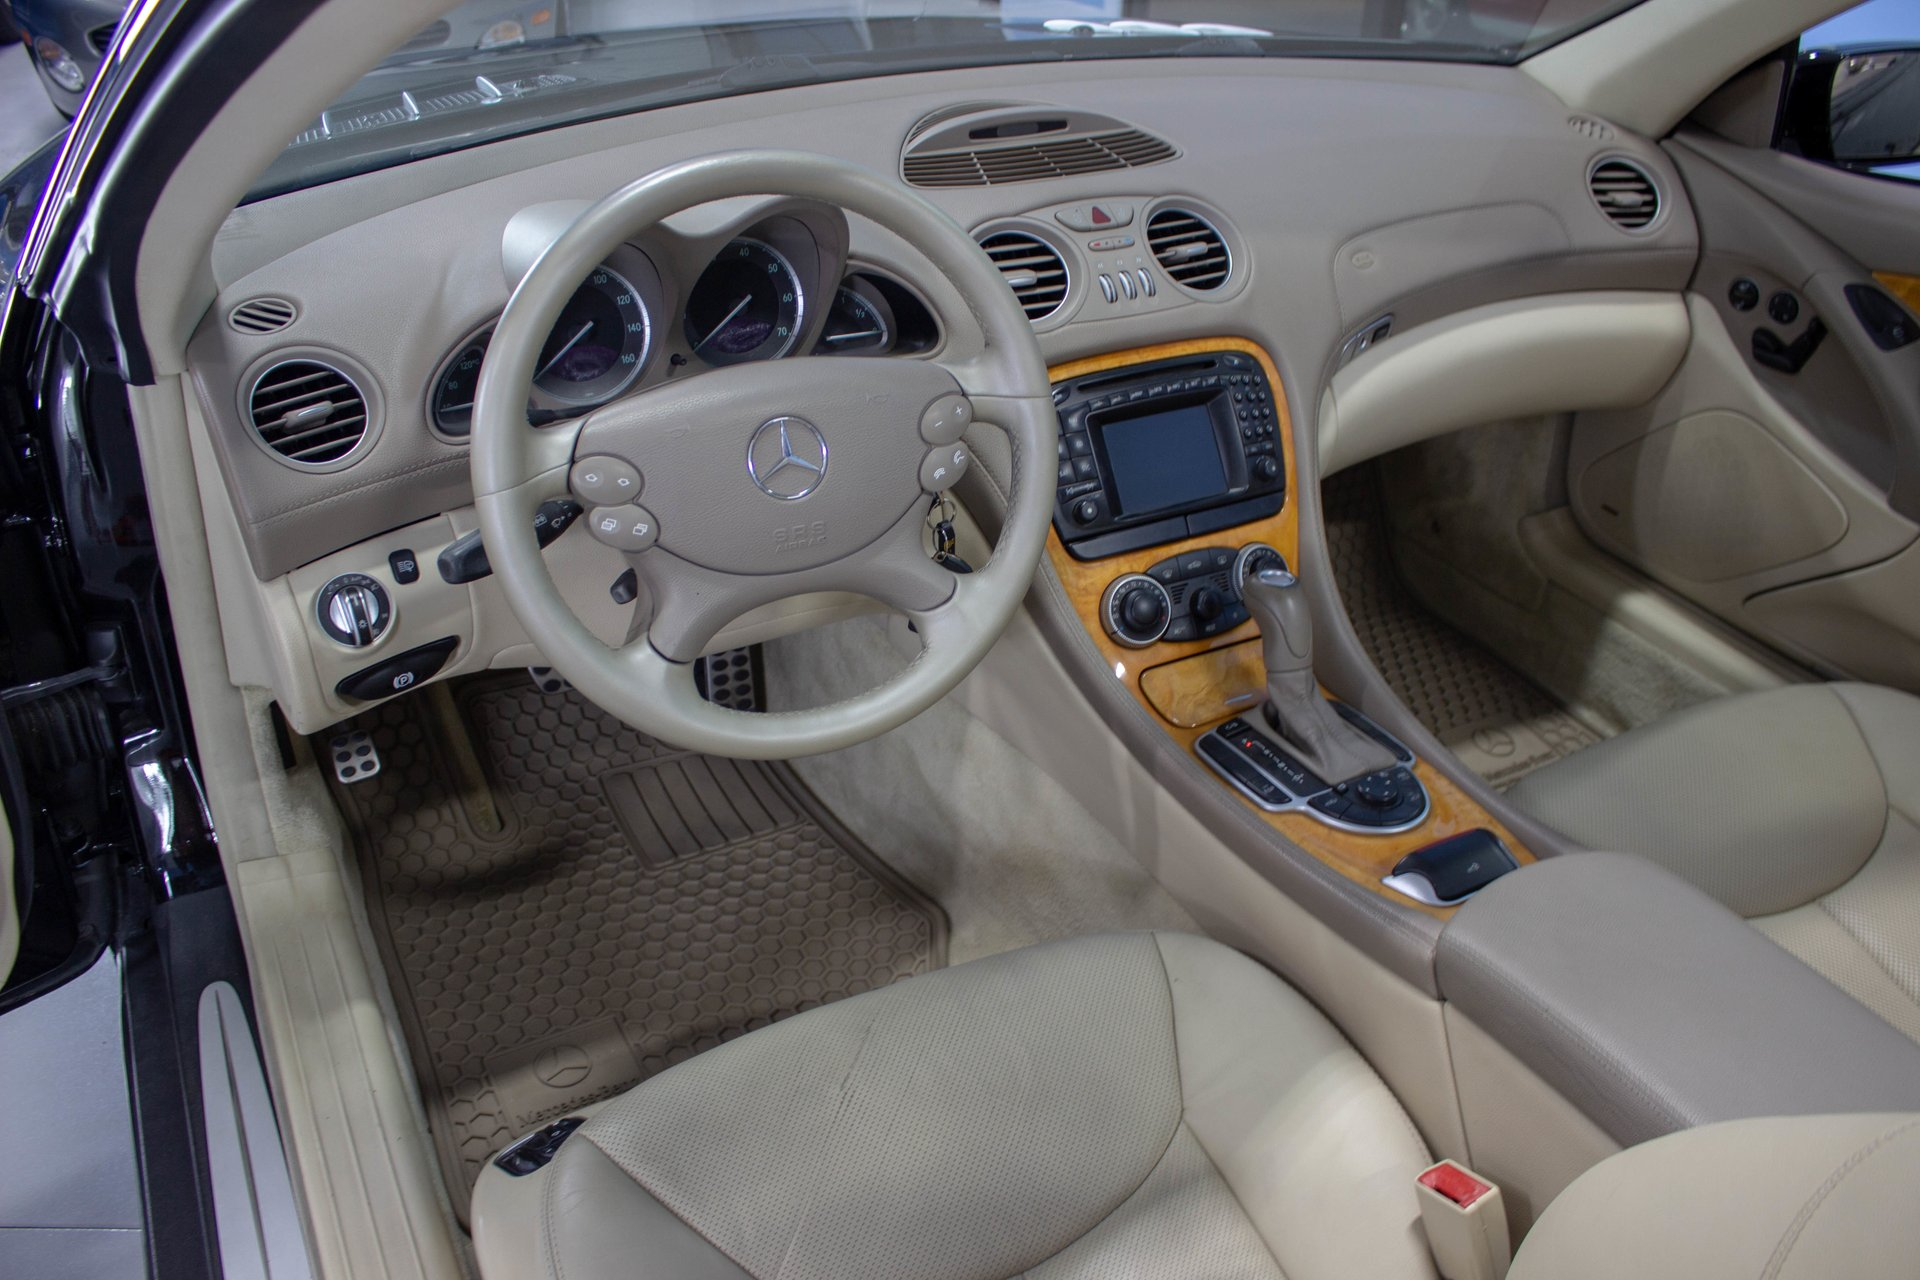 2004 Mercedes Benz Sl500 Classic Cars Used Cars For Sale In Tampa Fl